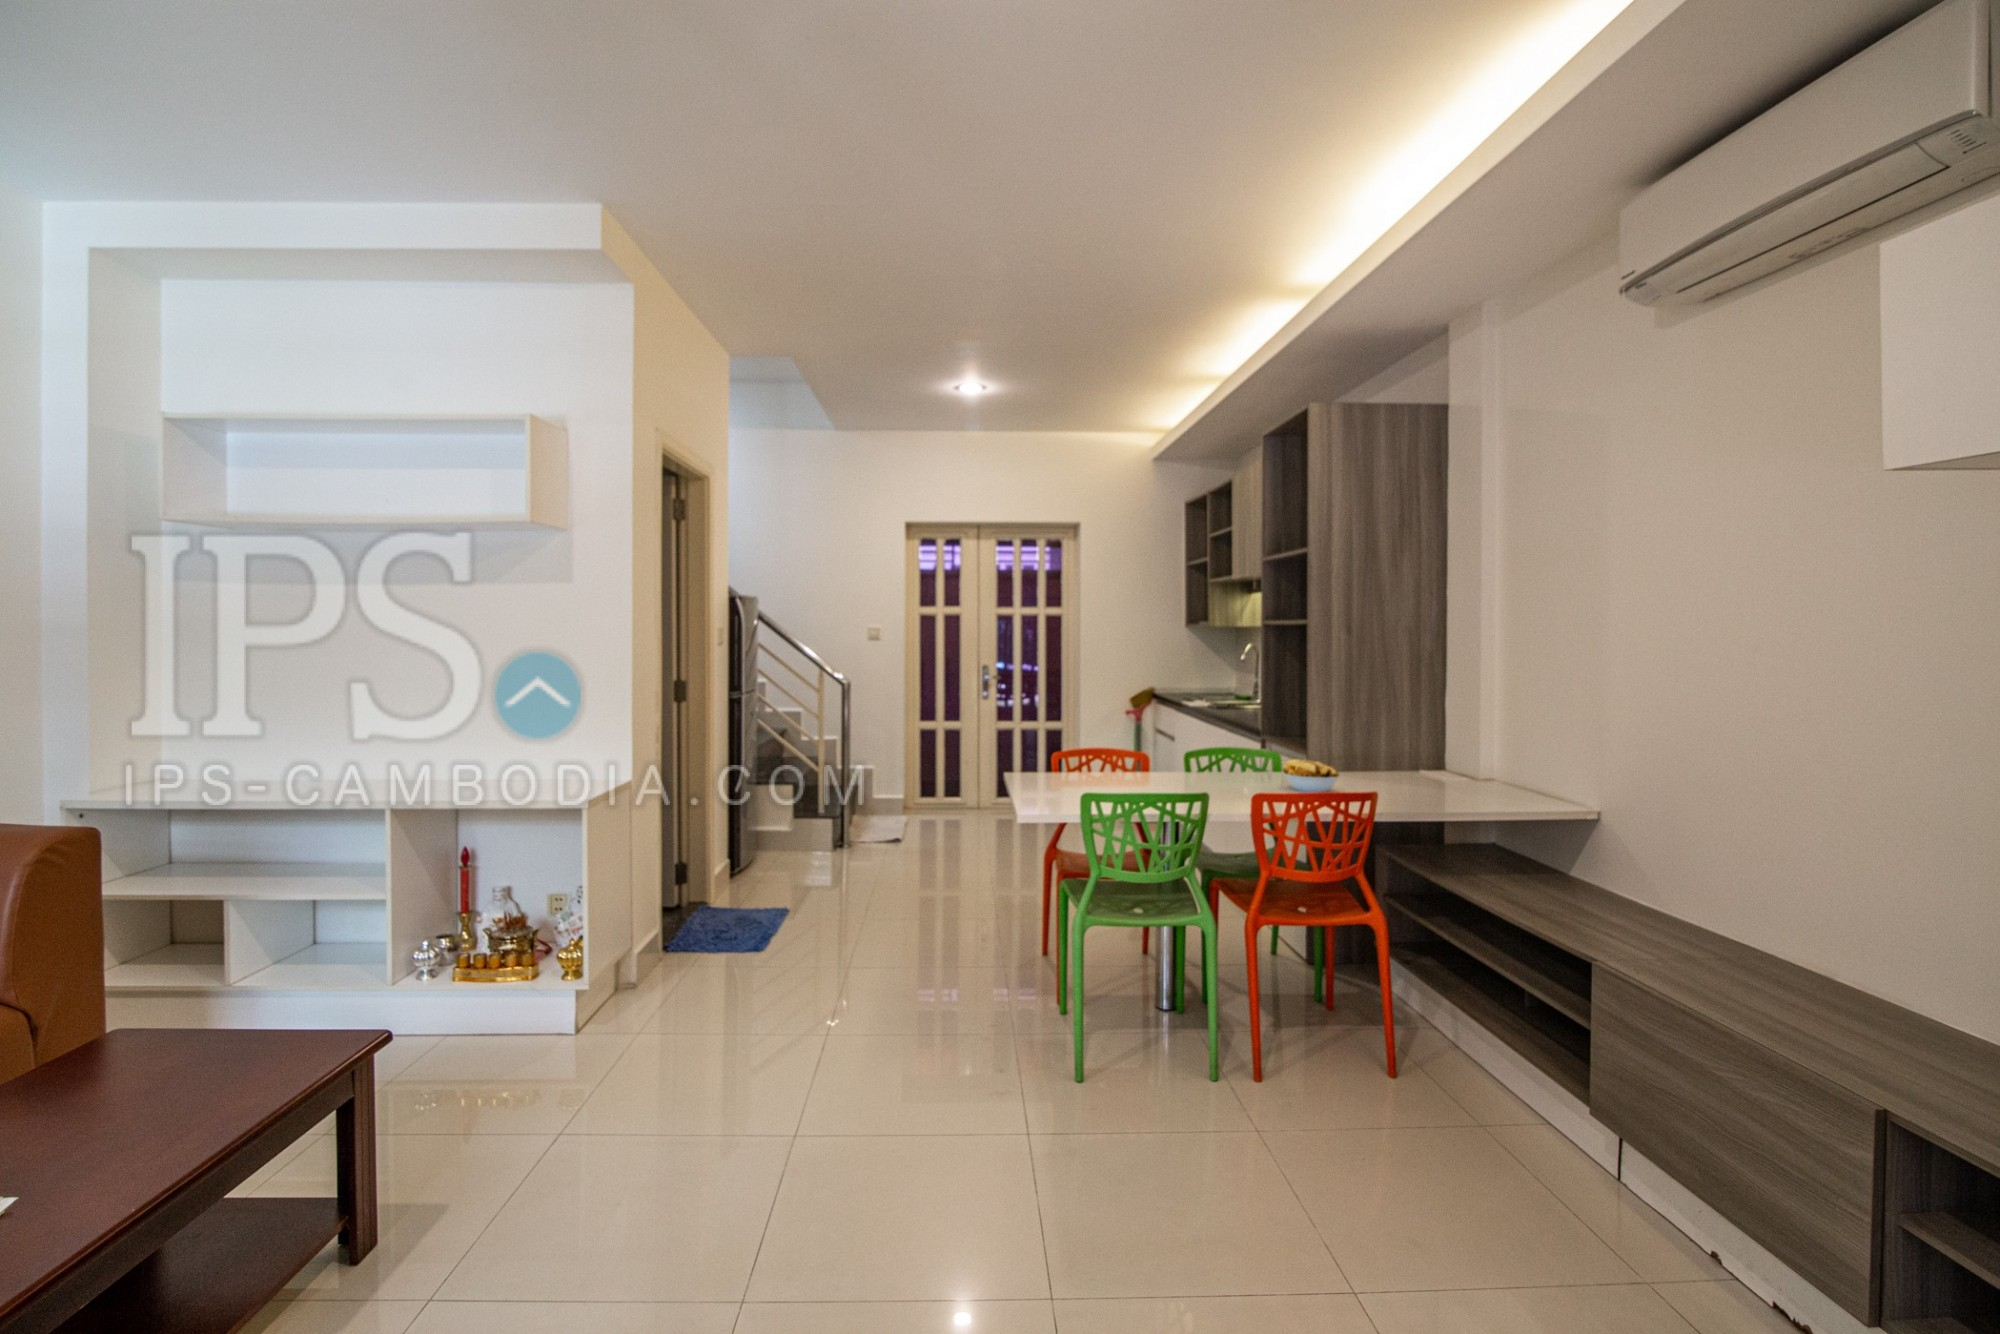 2 Bedroom Twin Villa For Rent - Borey Peng Huoth Boeng Snor, Phnom Penh